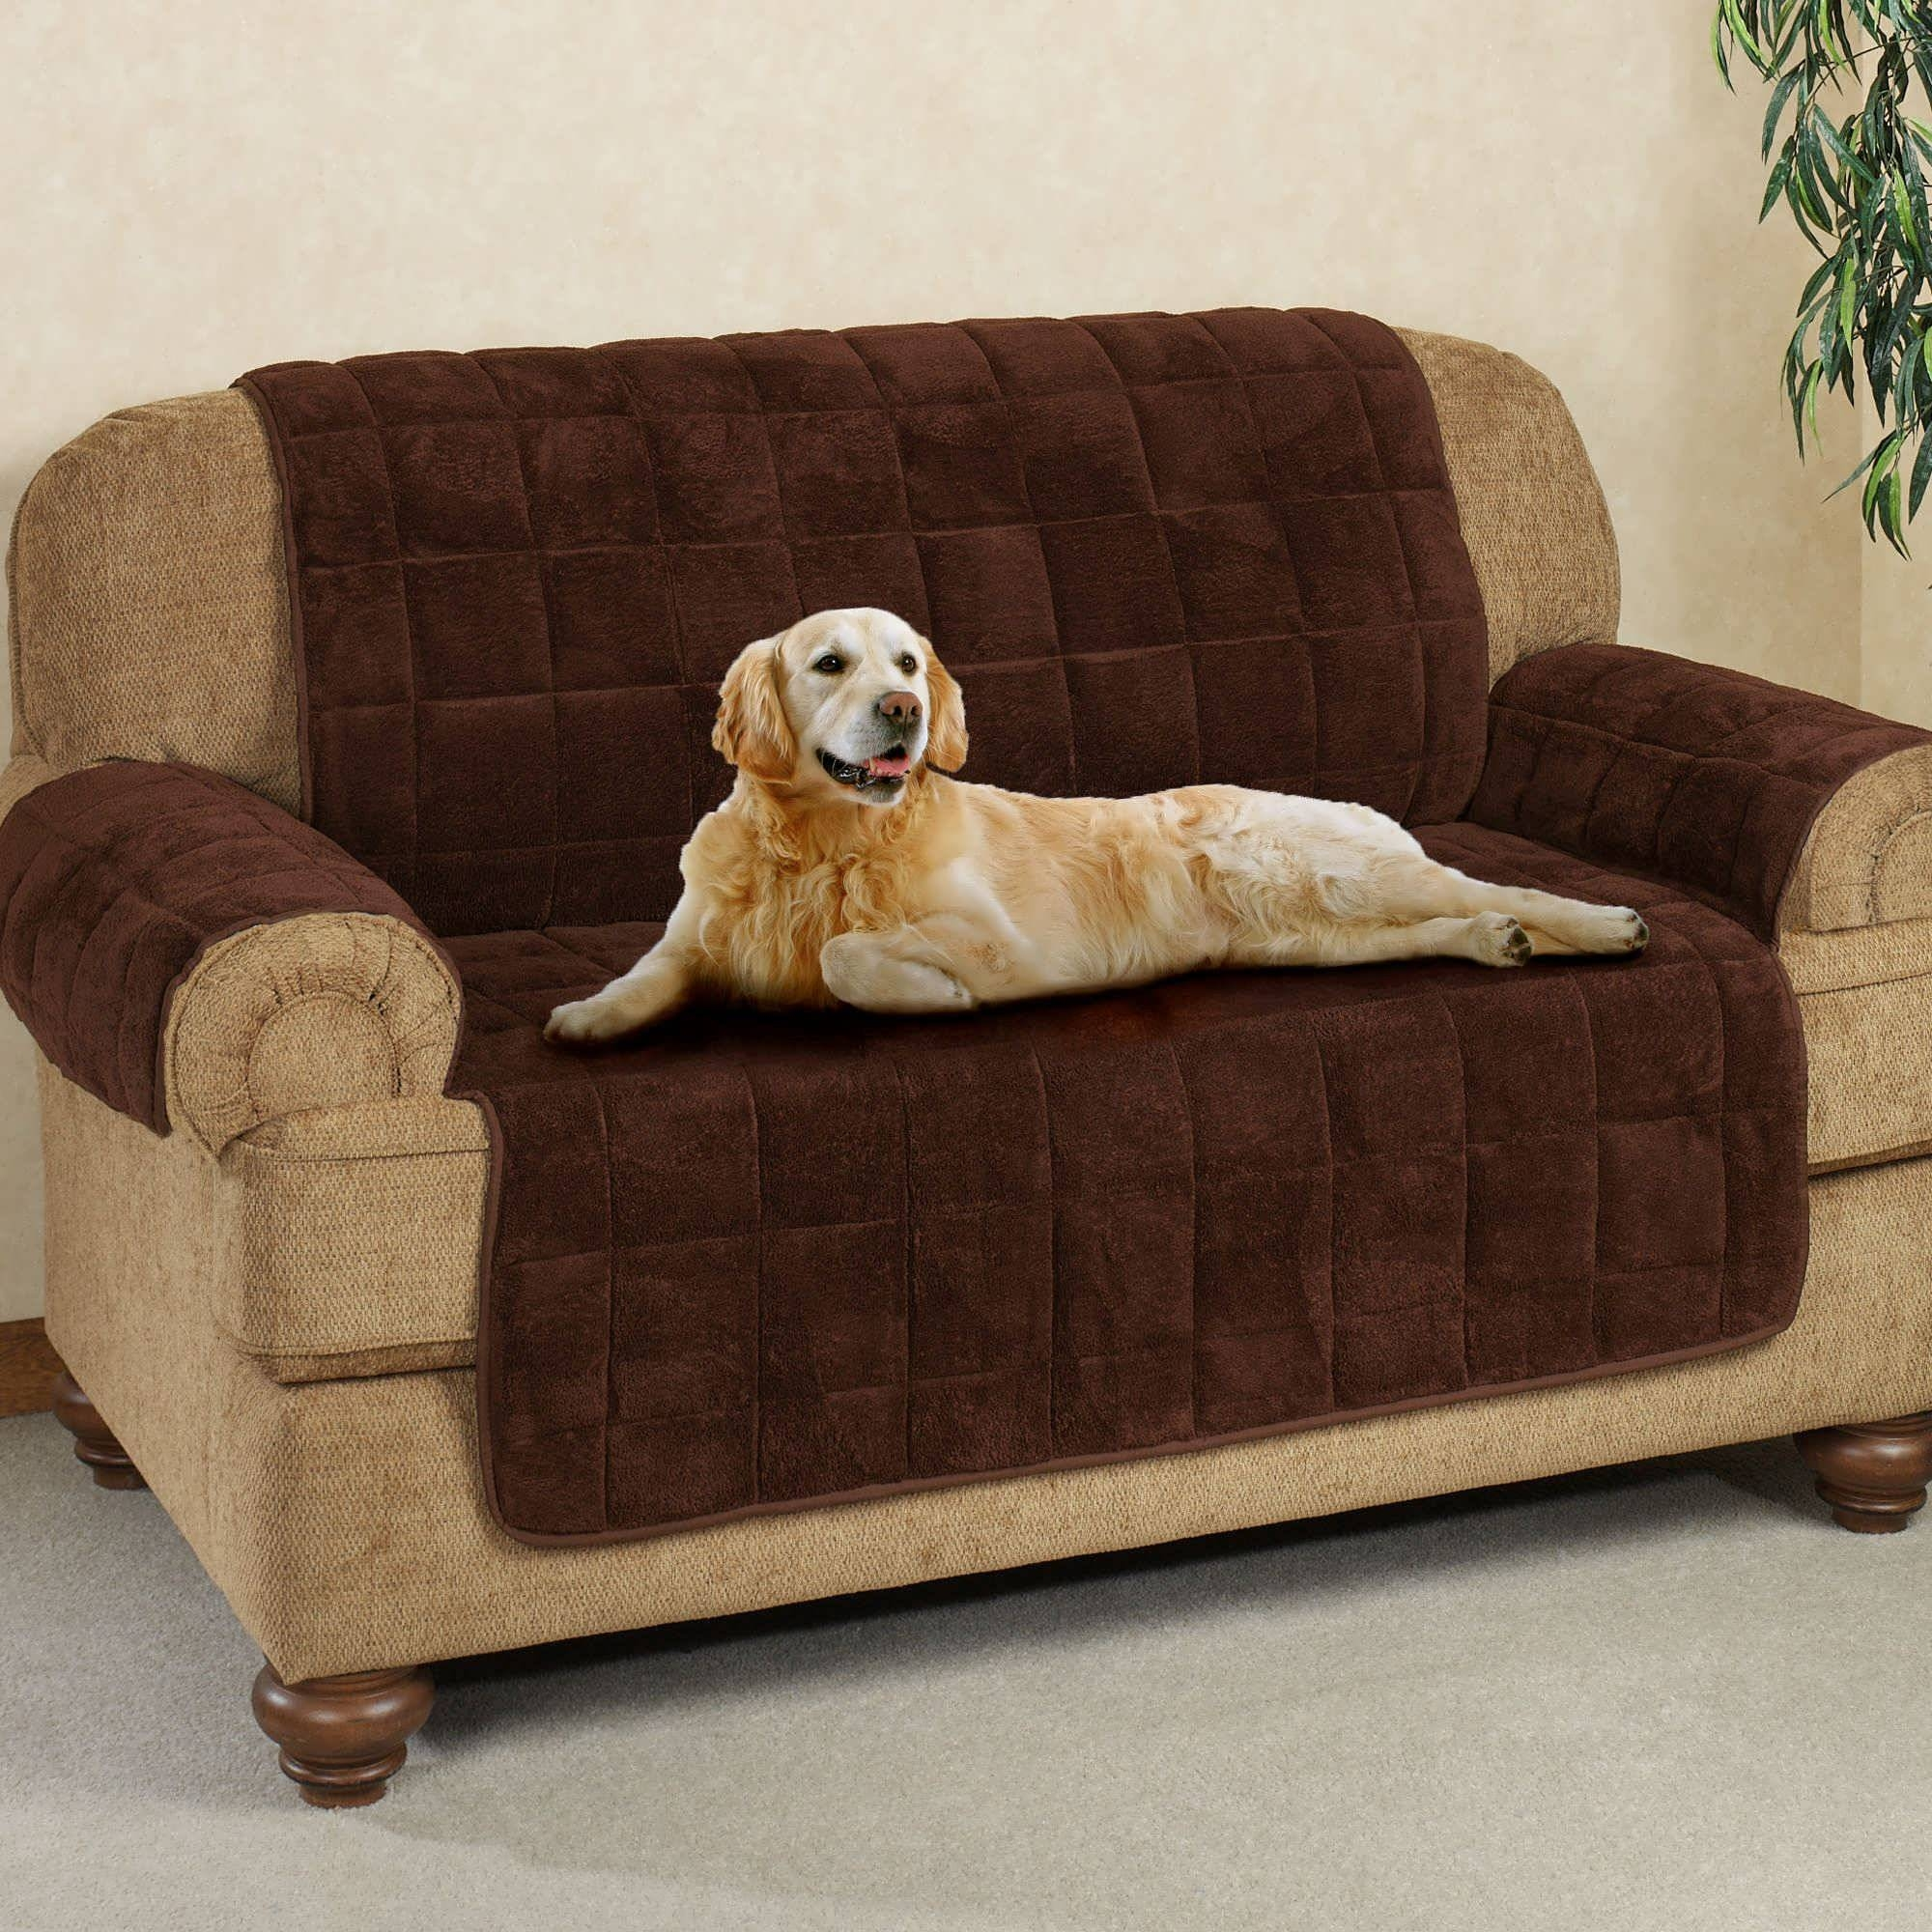 Sofa : Leather Sofa Sofa With Washable Covers Couch And Loveseat regarding Sofa And Loveseat Covers (Image 12 of 15)